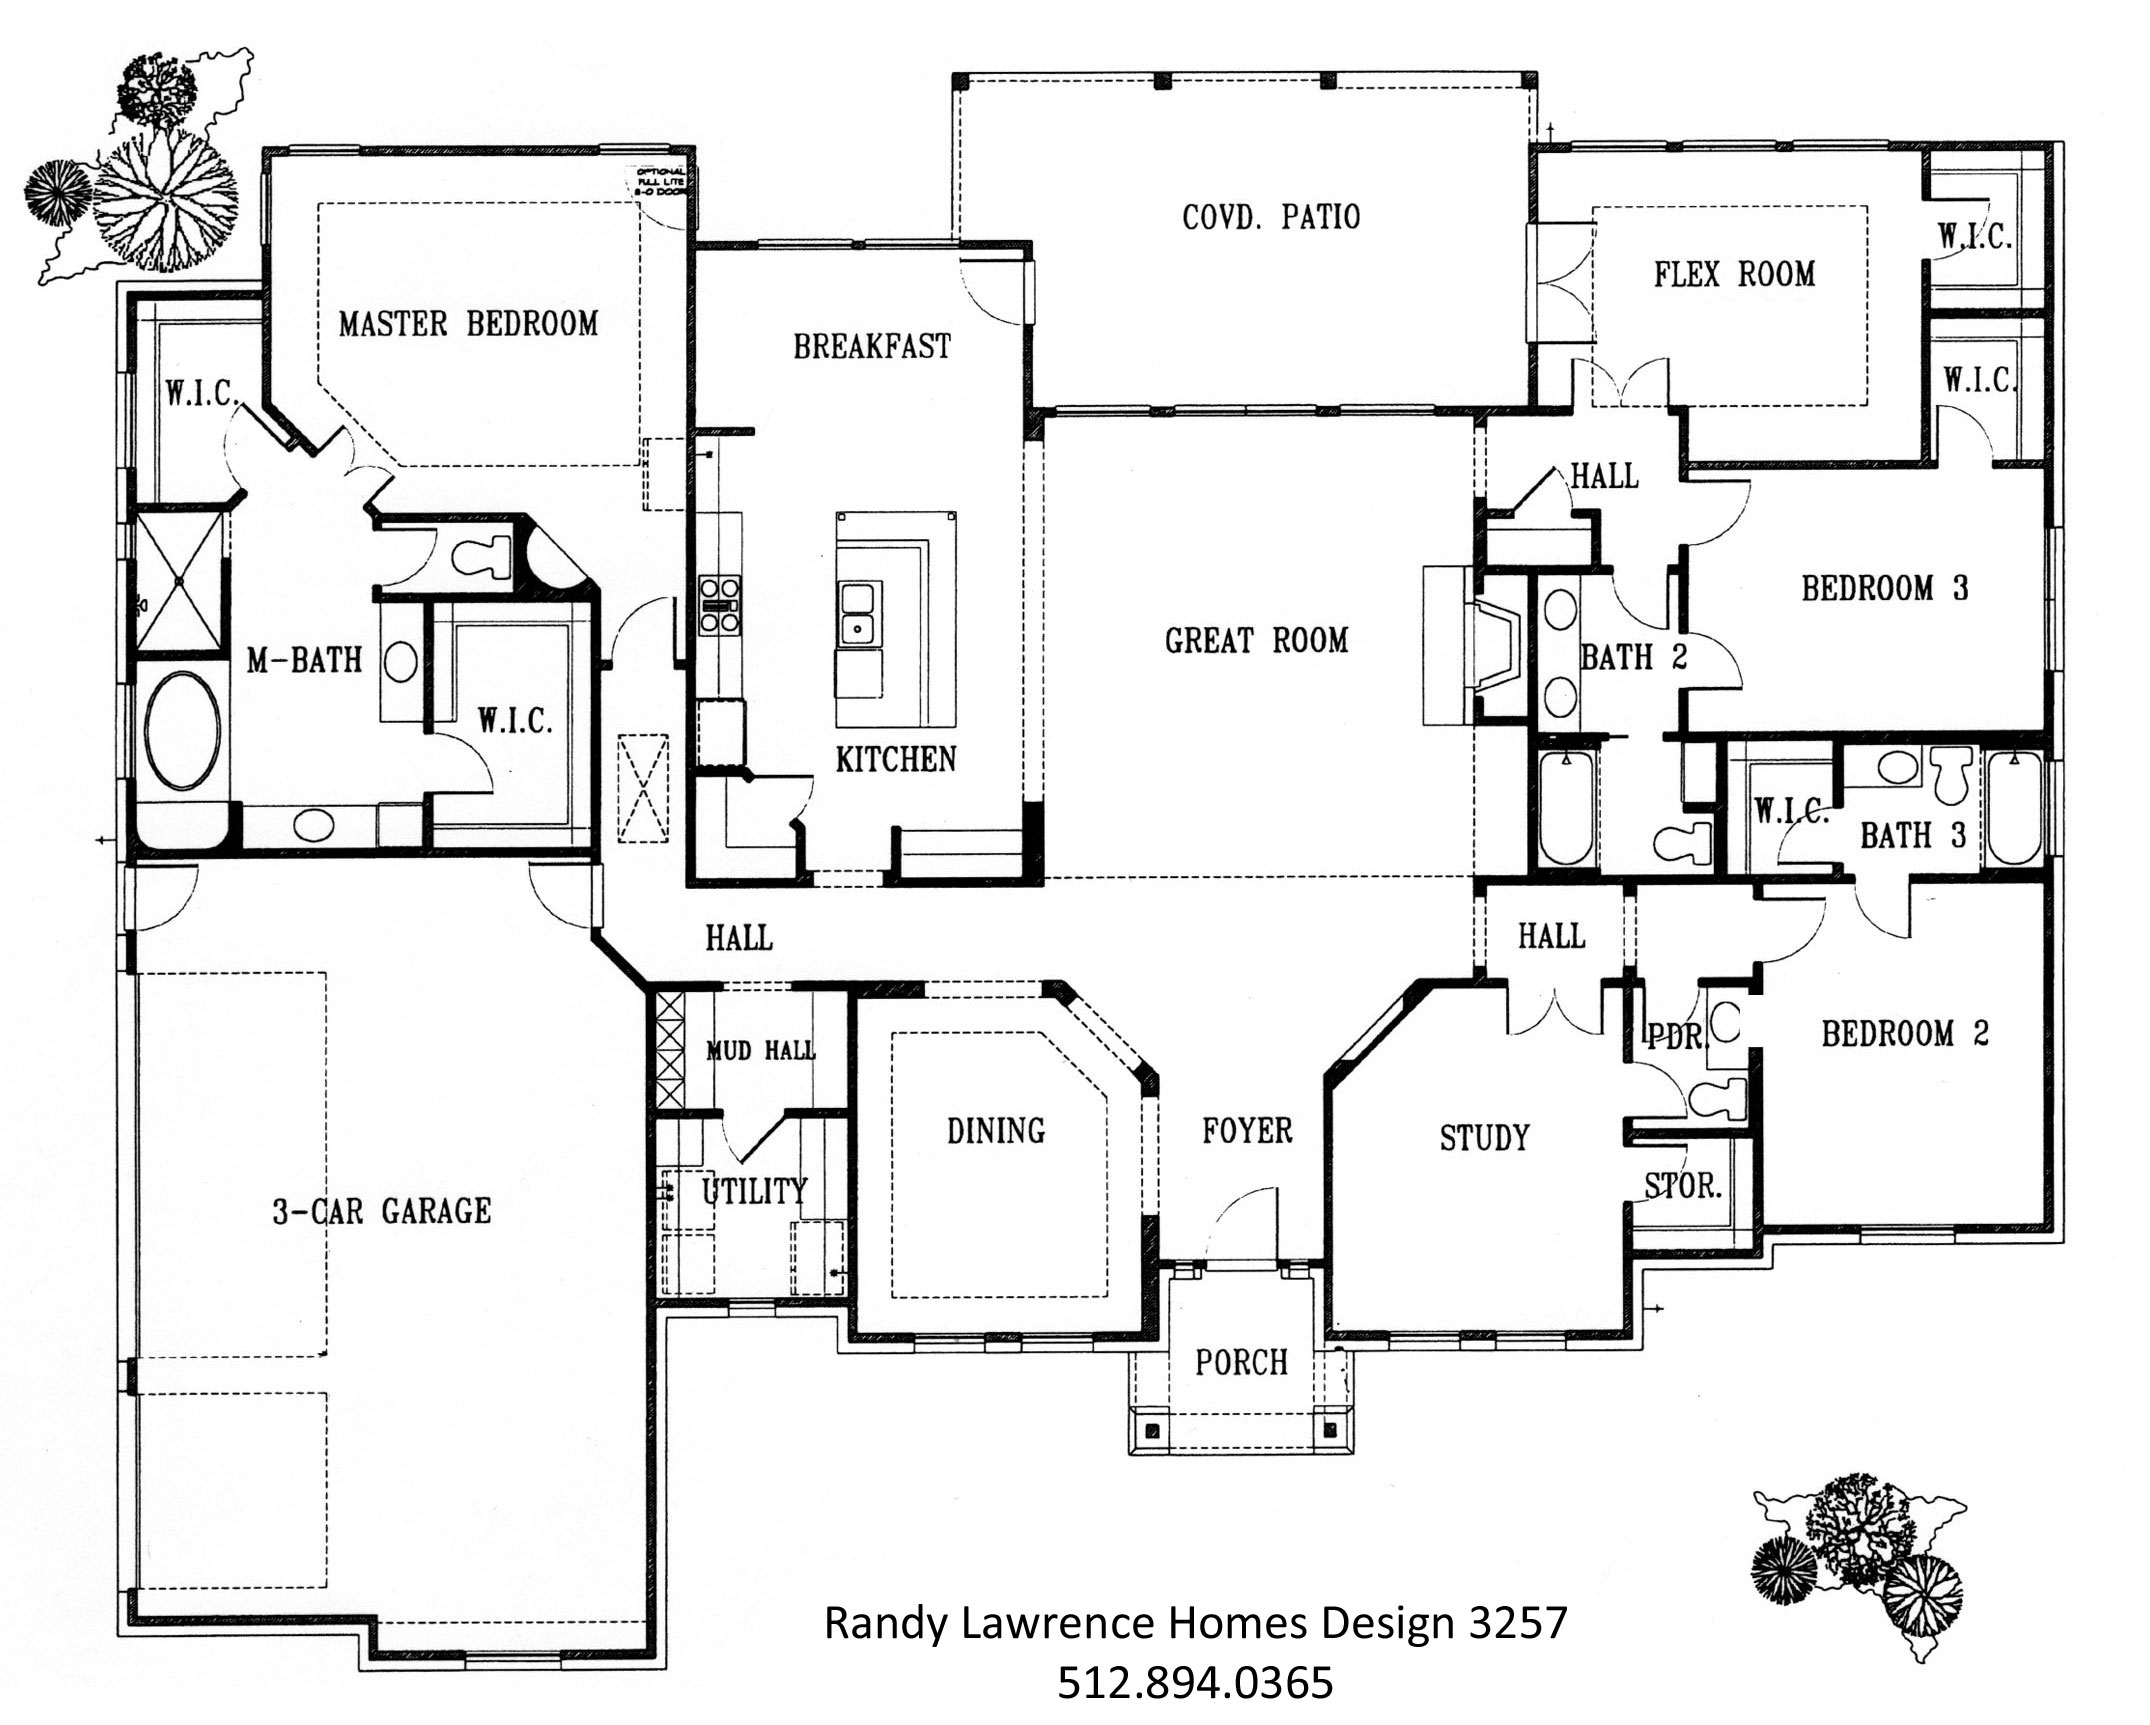 Great Randy Lawrence Homes Floor Plan 3257 Part 3